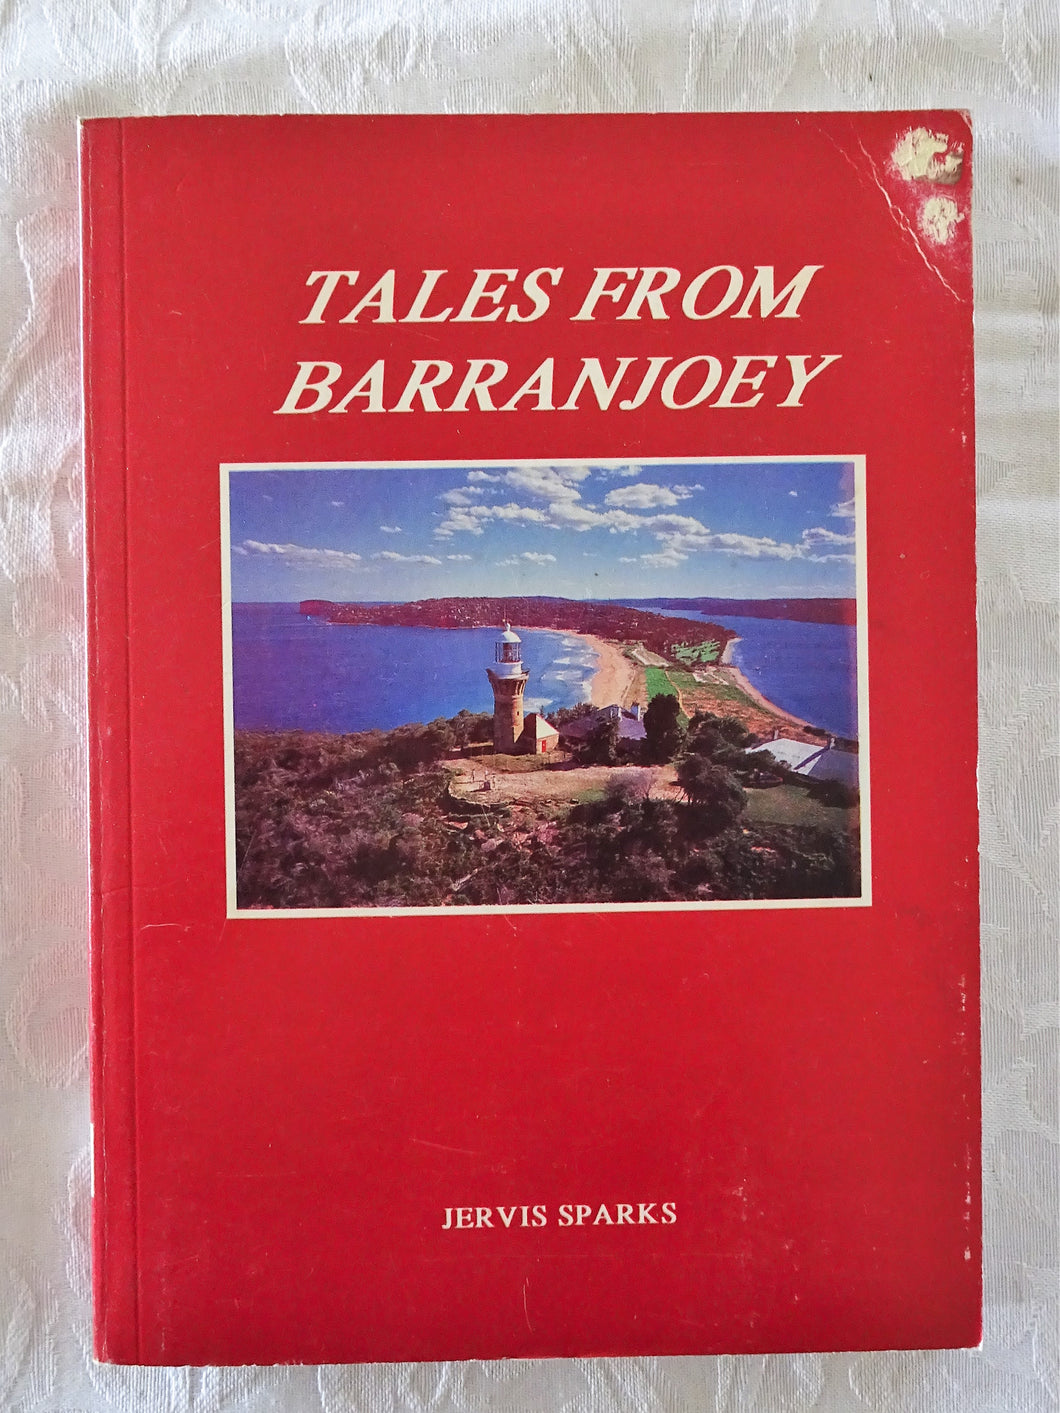 Tales From Barranjoey by Jervis Sparks